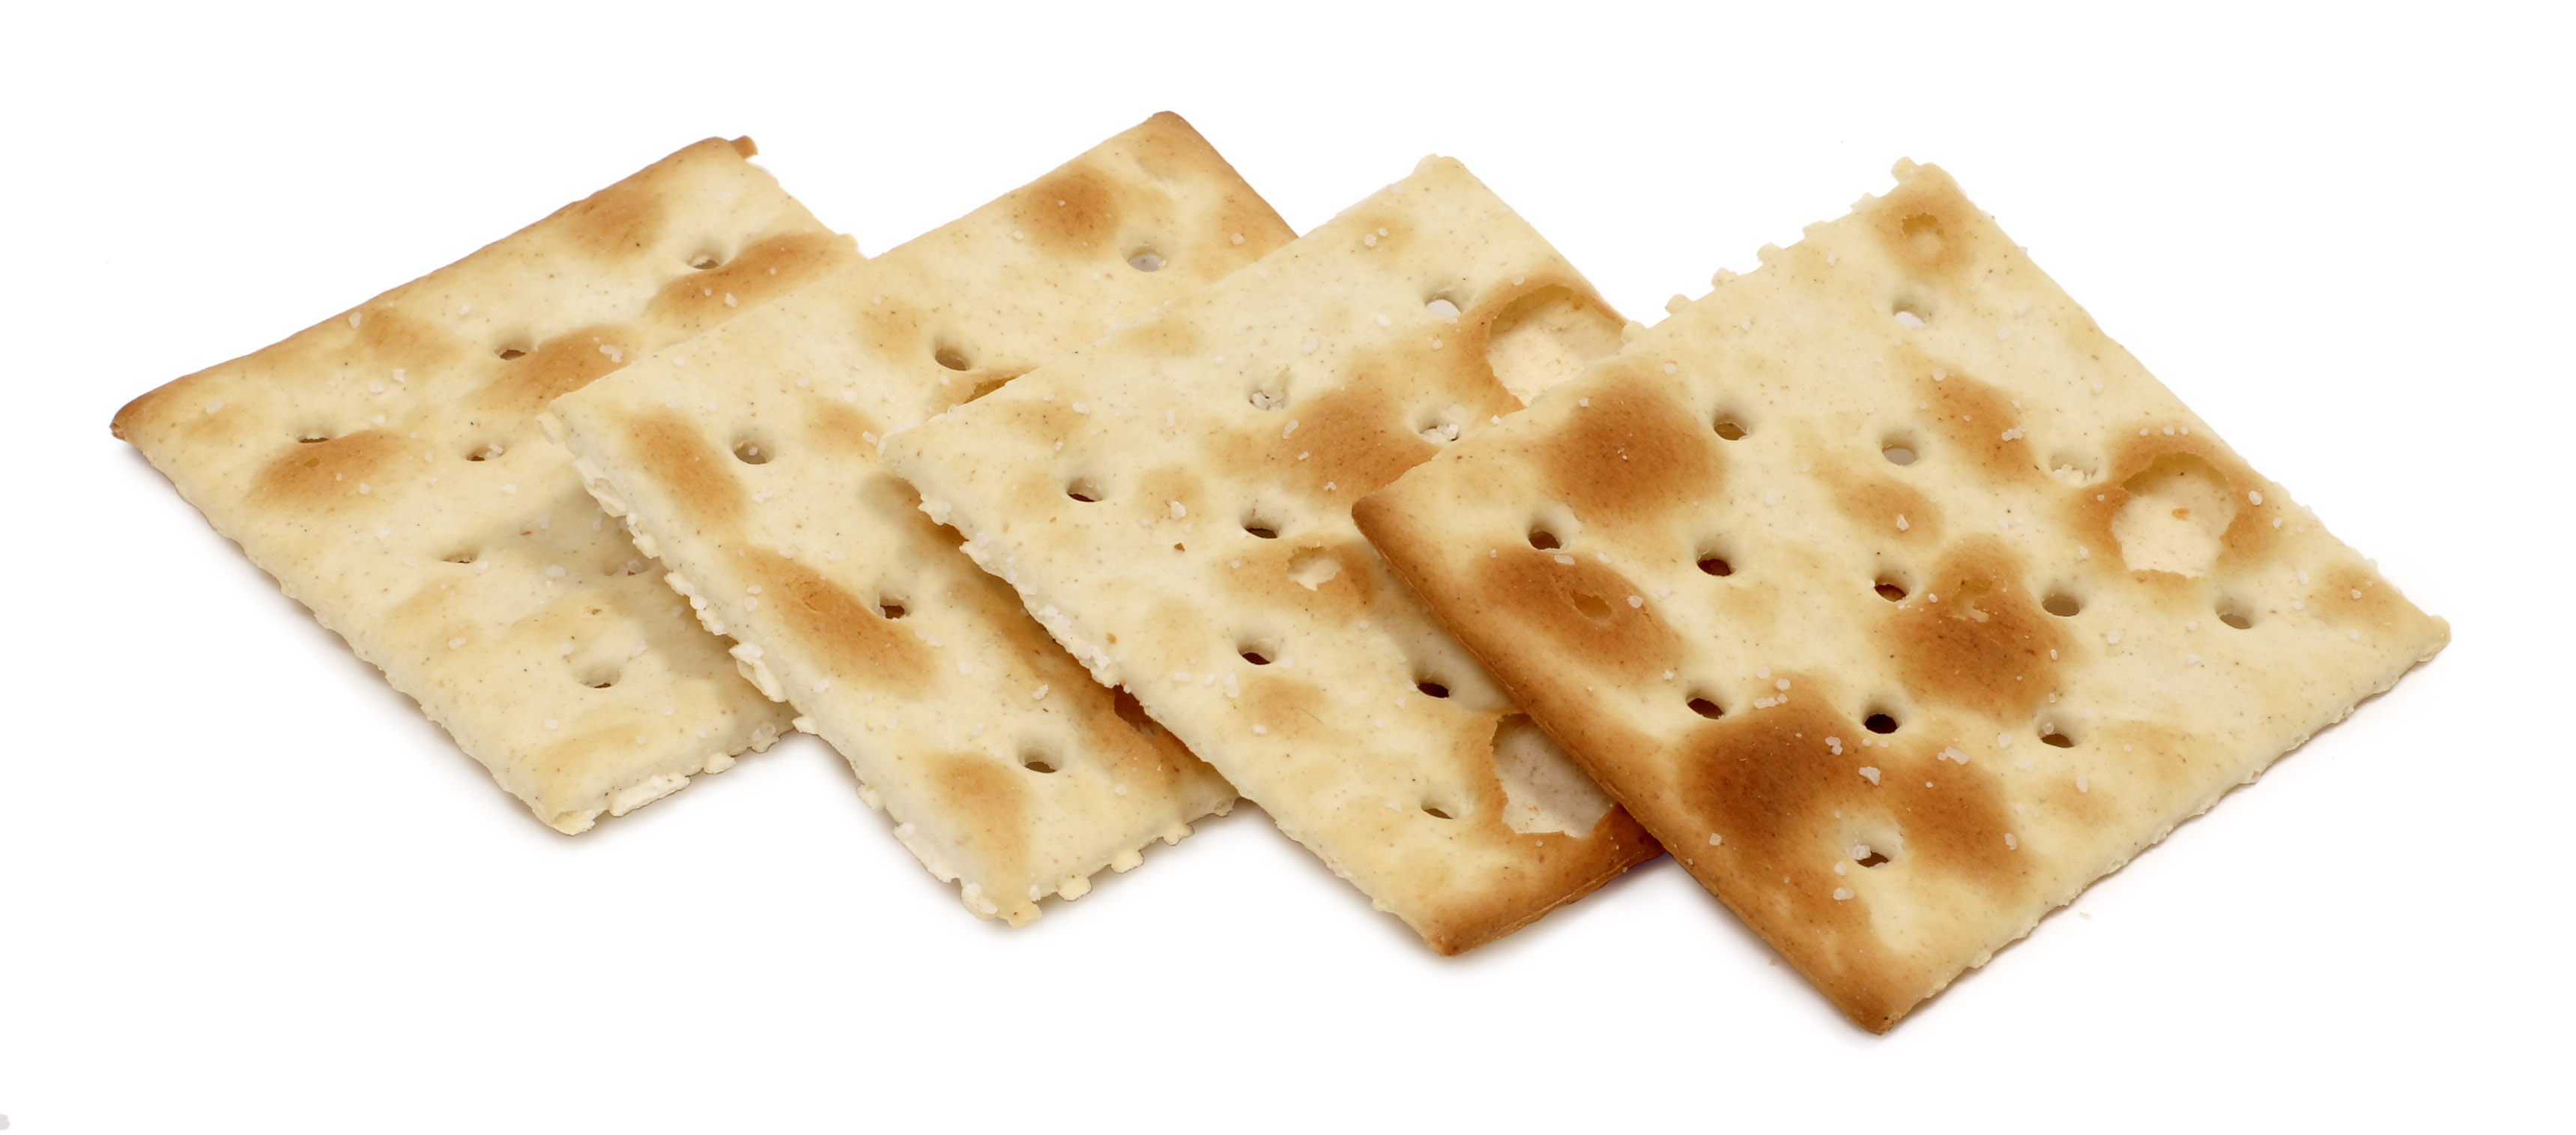 http://upload.wikimedia.org/wikipedia/commons/9/9f/Saltine-Crackers ...